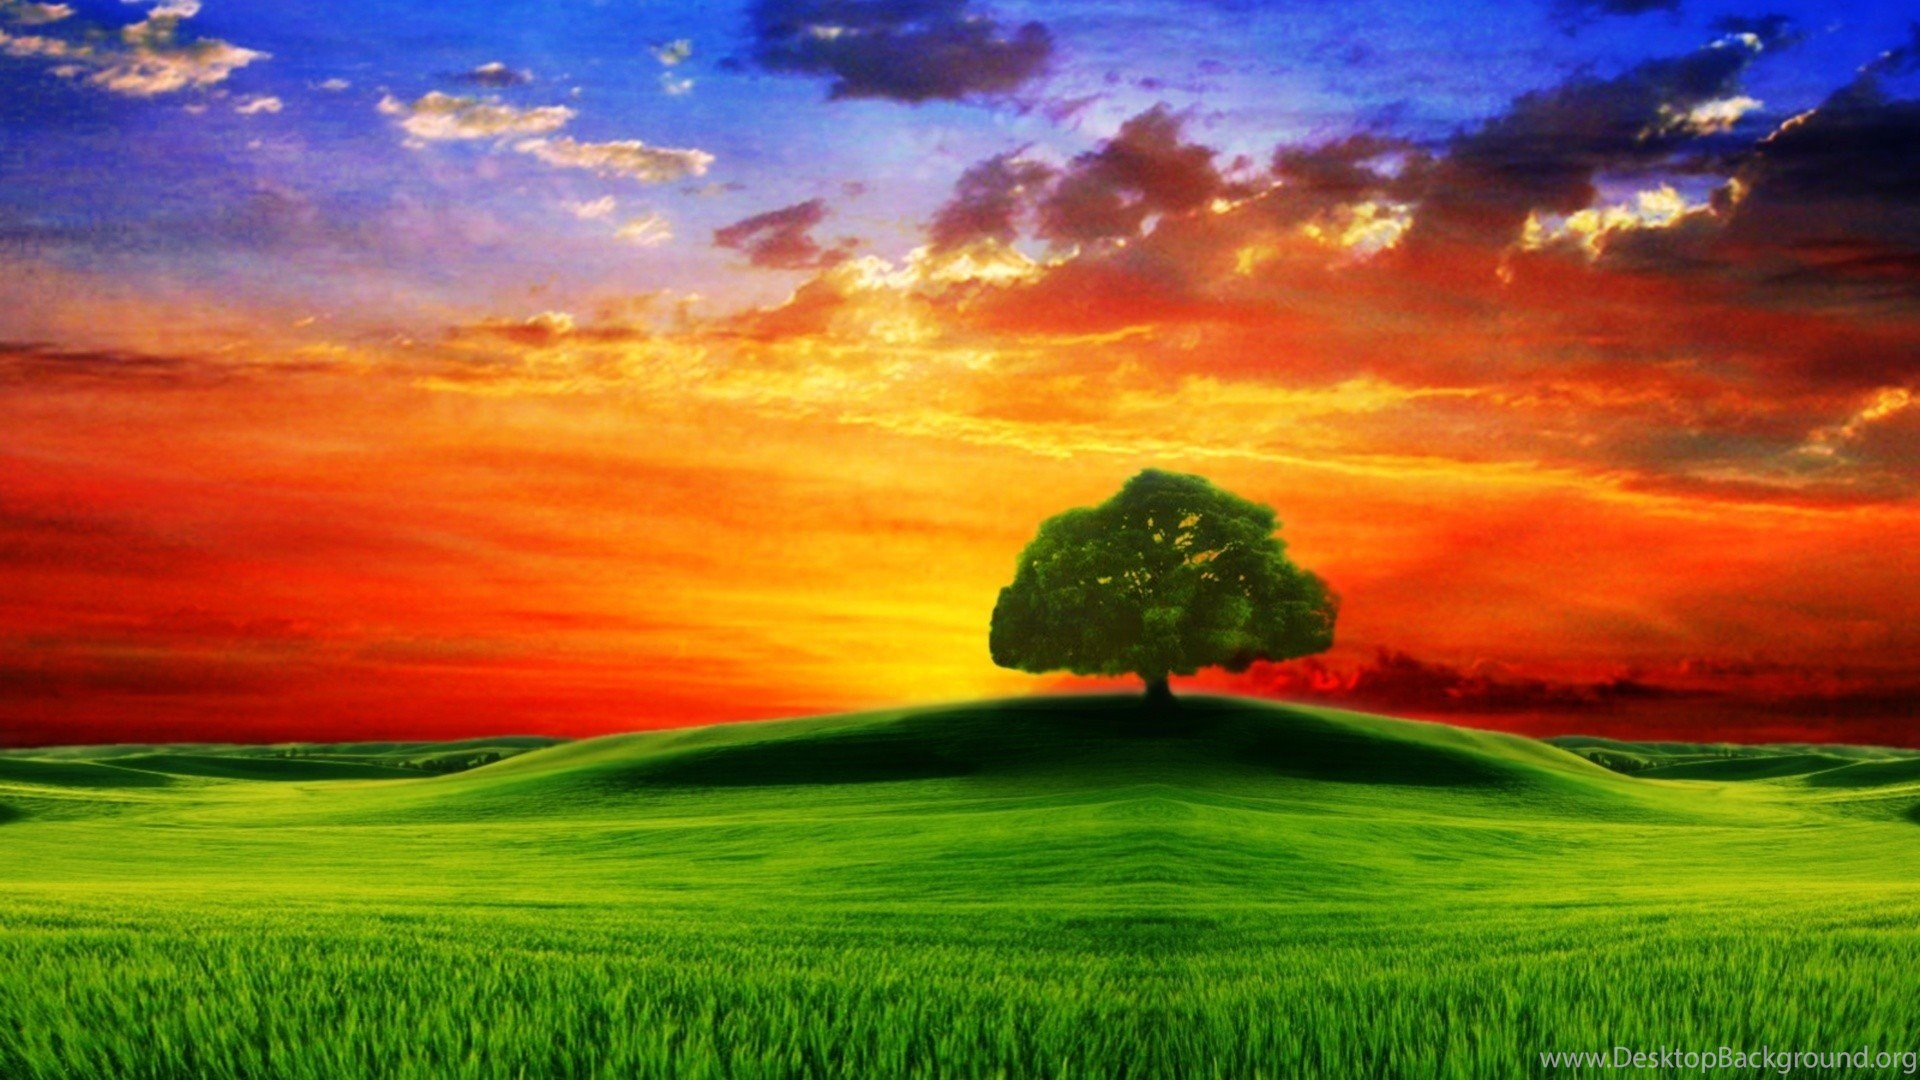 wallpapers background sceneries nature sunset laptops